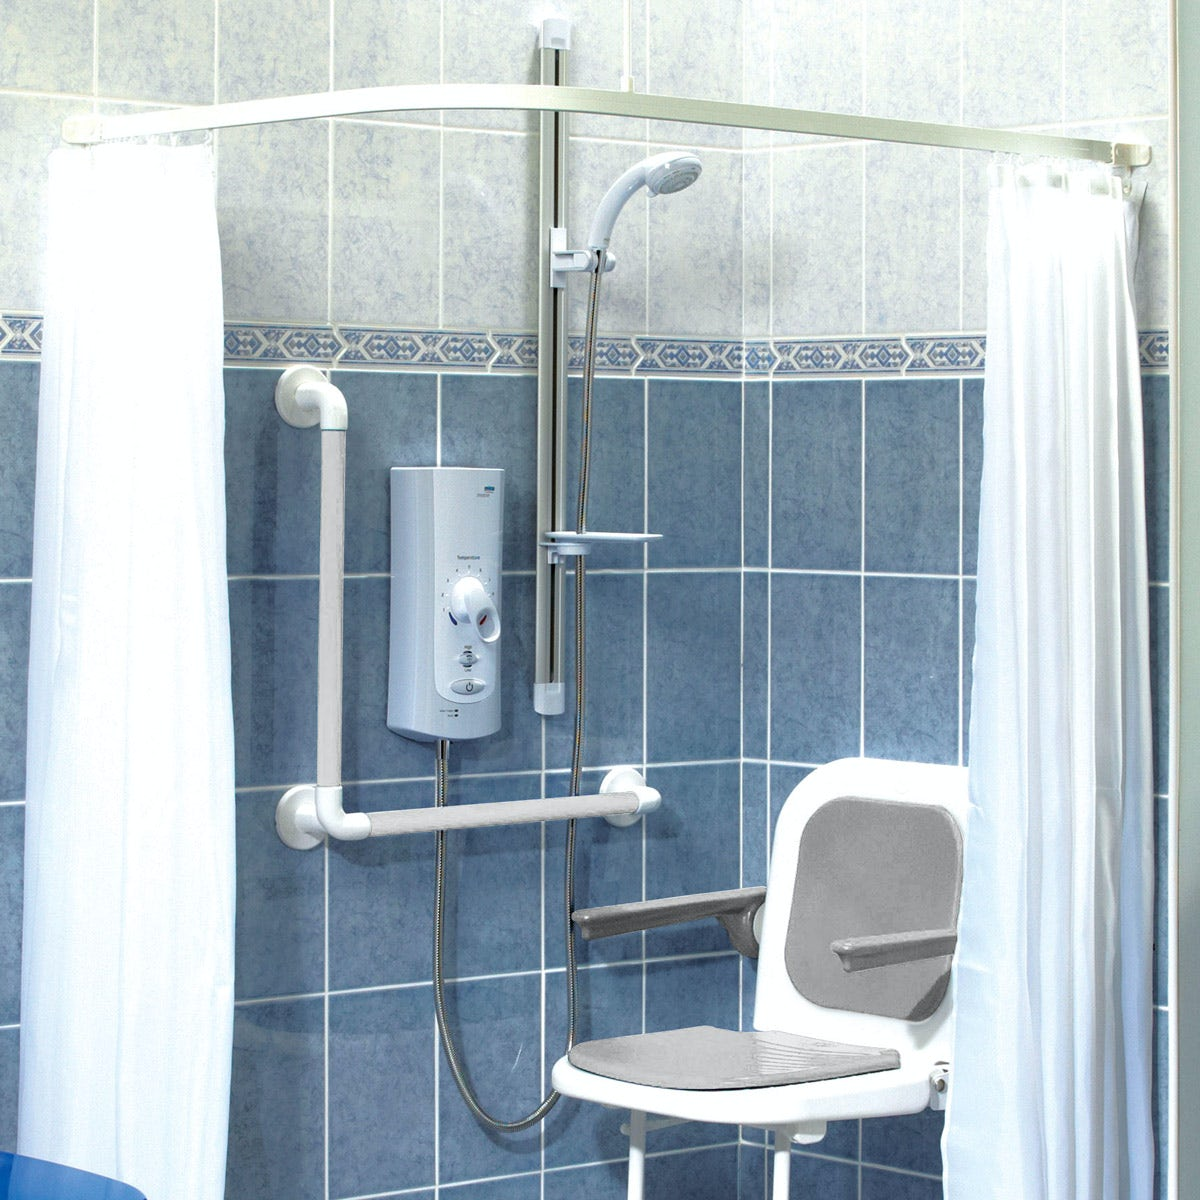 AKW Heavy duty shower curtain 1800 x 2000 - Sold by Victoria Plum